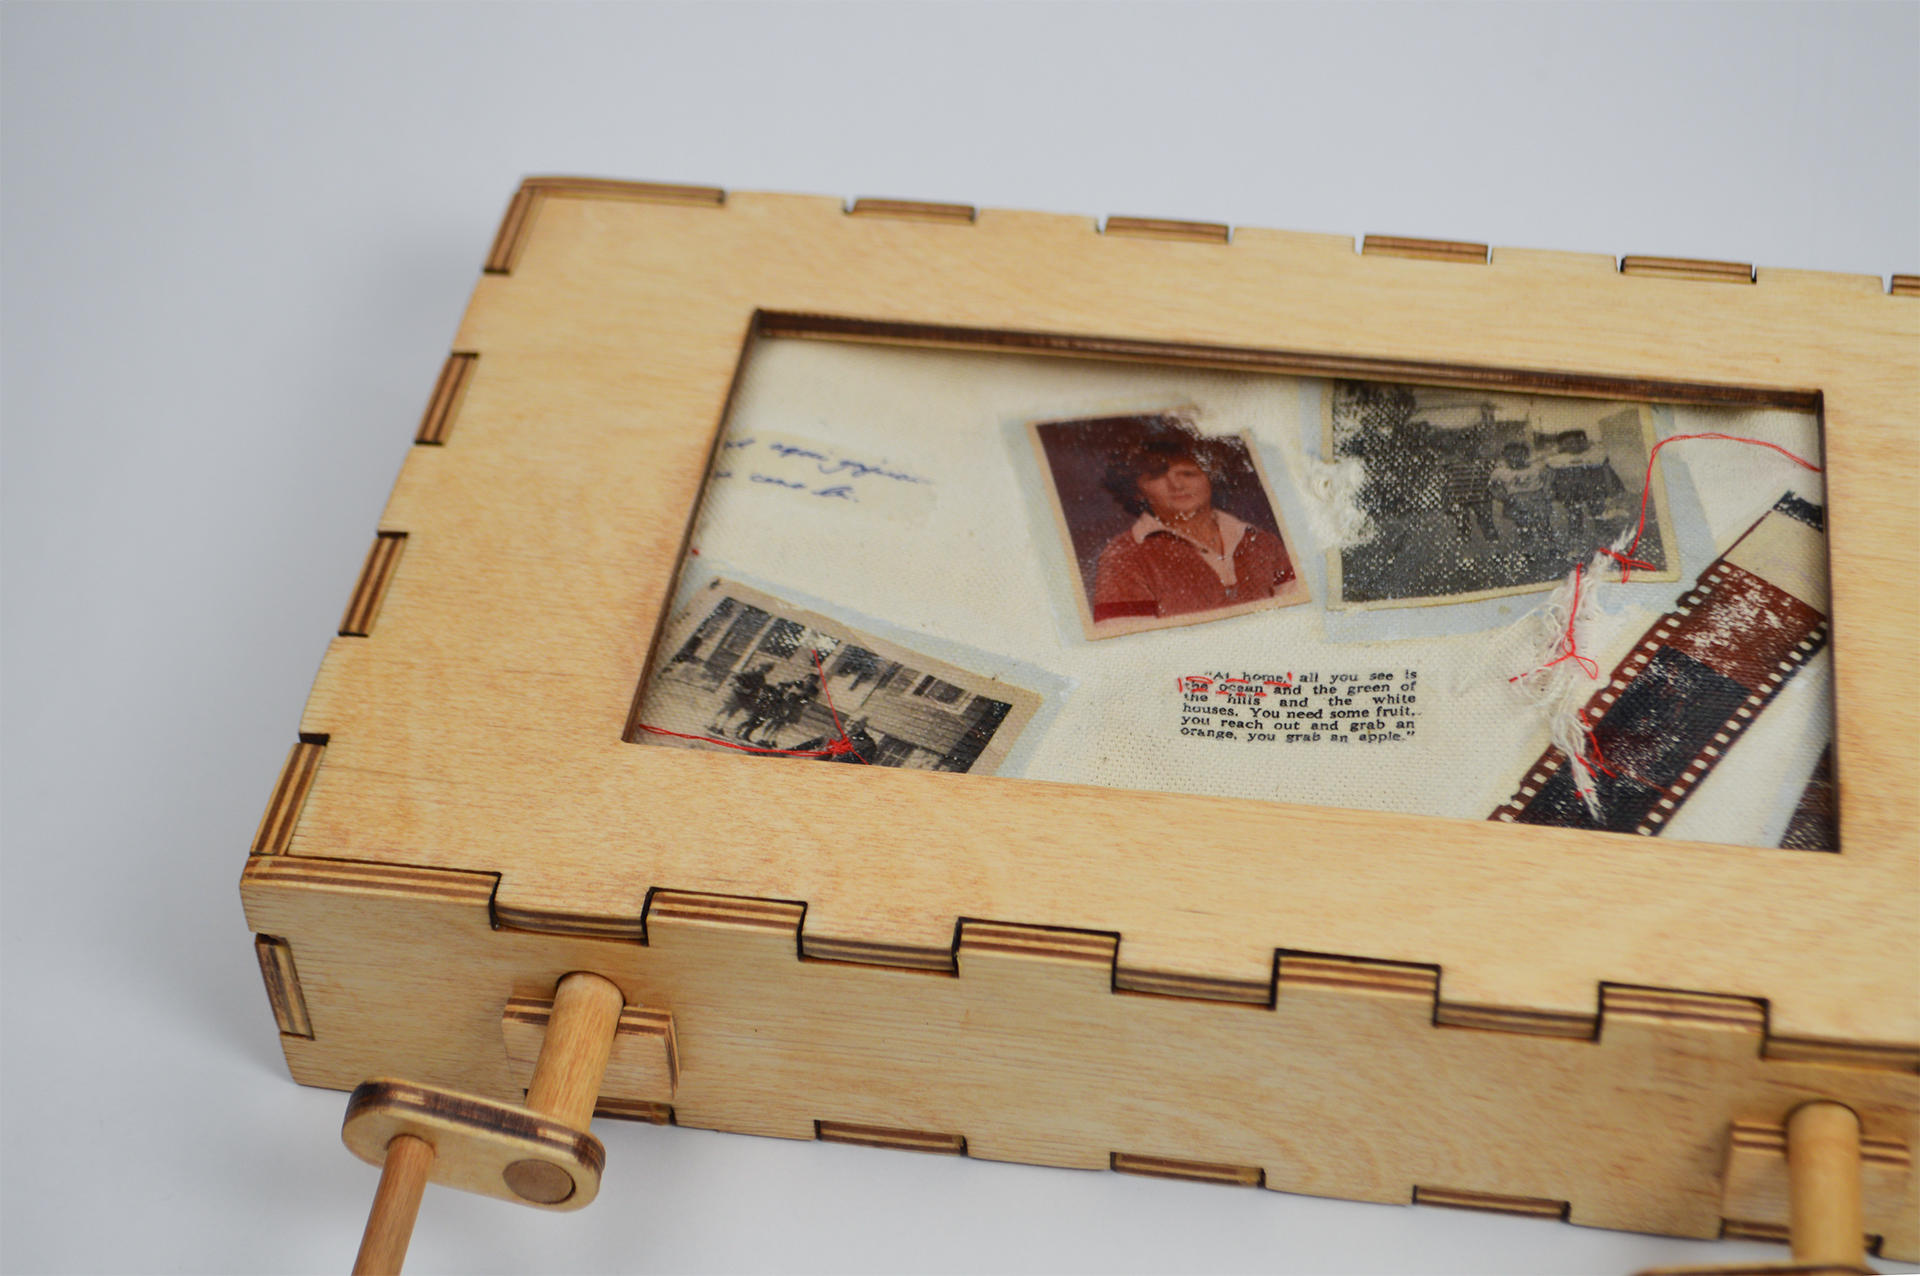 Birch plywood box containing family documents